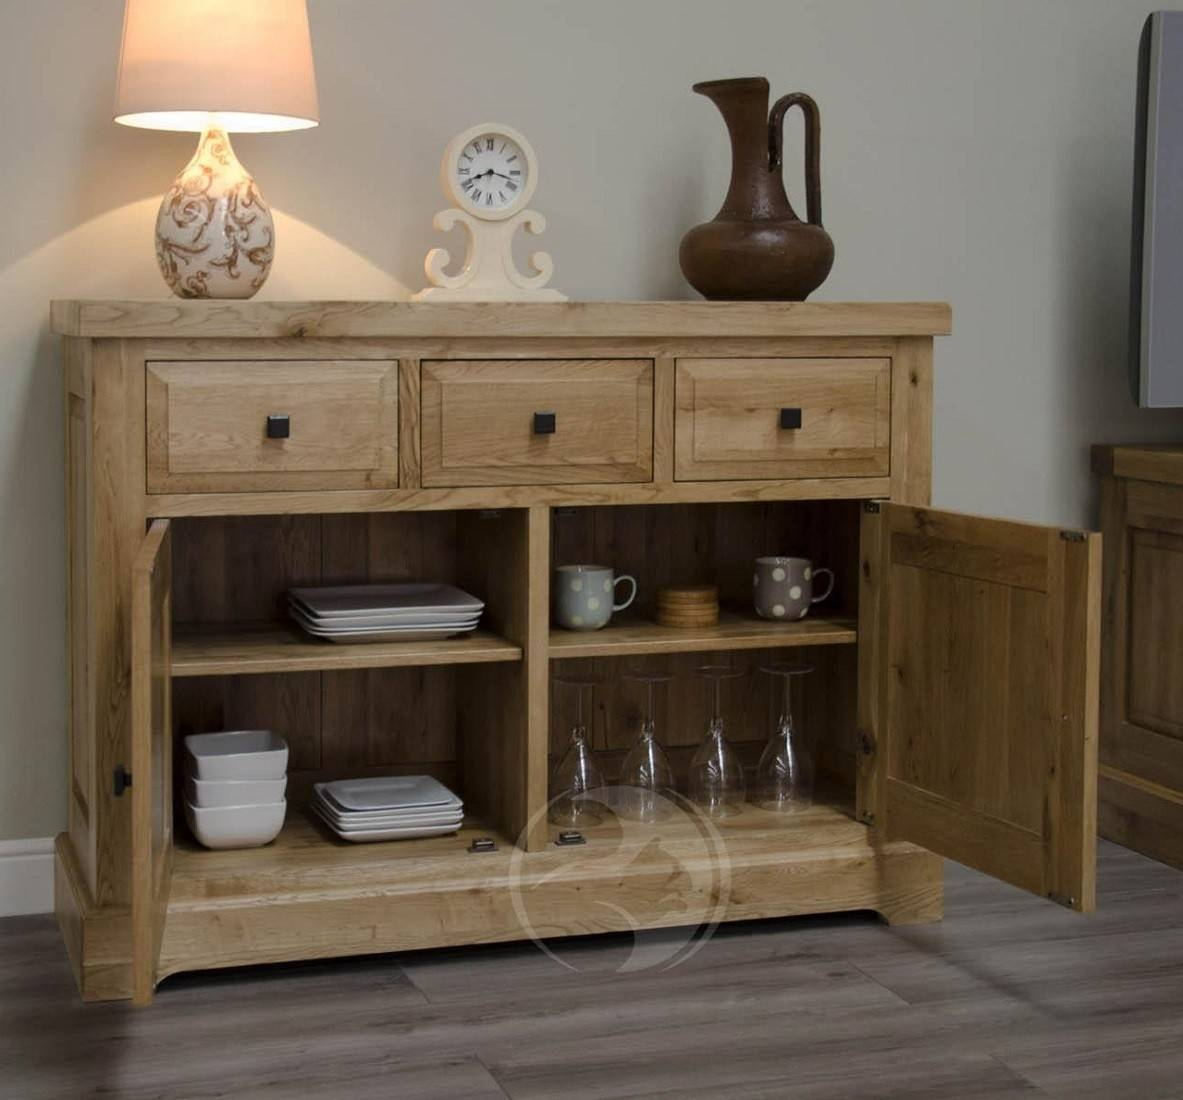 Coniston Rustic Solid Oak Medium Sideboard | Oak Furniture Uk with regard to Rustic Sideboard Furniture (Image 3 of 15)